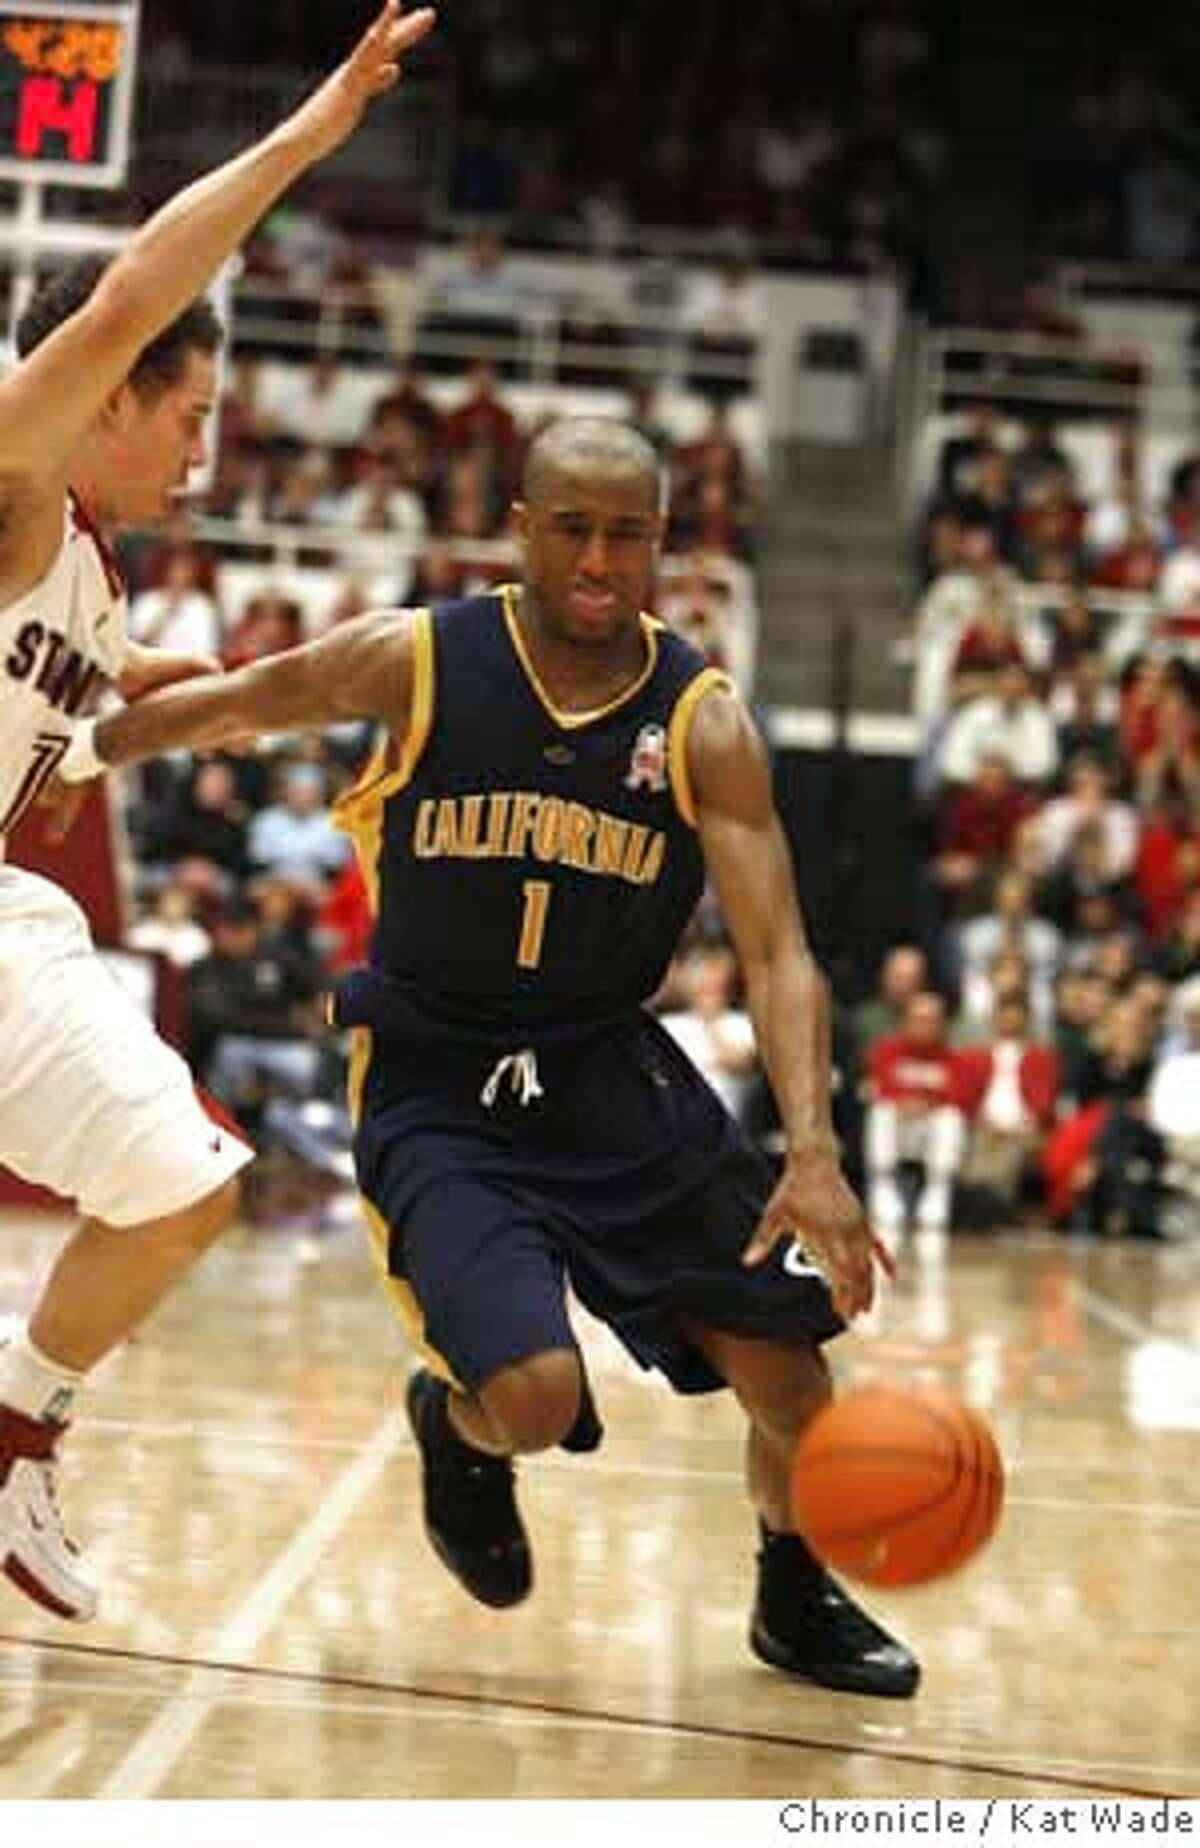 CAL_STANFORD_2_0593_KW_.jpg Cal State Golden Bear's high scorer (26 points) Ayinde Ubaka (RIGHT) drives past the Cardinal's #1 Mitch Johnson towards the basket during the second period of the game against the Stanford Cardinals during the Pac 10 Conference Game at Stanford University in the Maples Pavilion in Palo Alto on January 3, 2007. Kat Wade/The Chronicle Mandatory Credit for San Francisco Chronicle and photographer, Kat Wade, Mags out